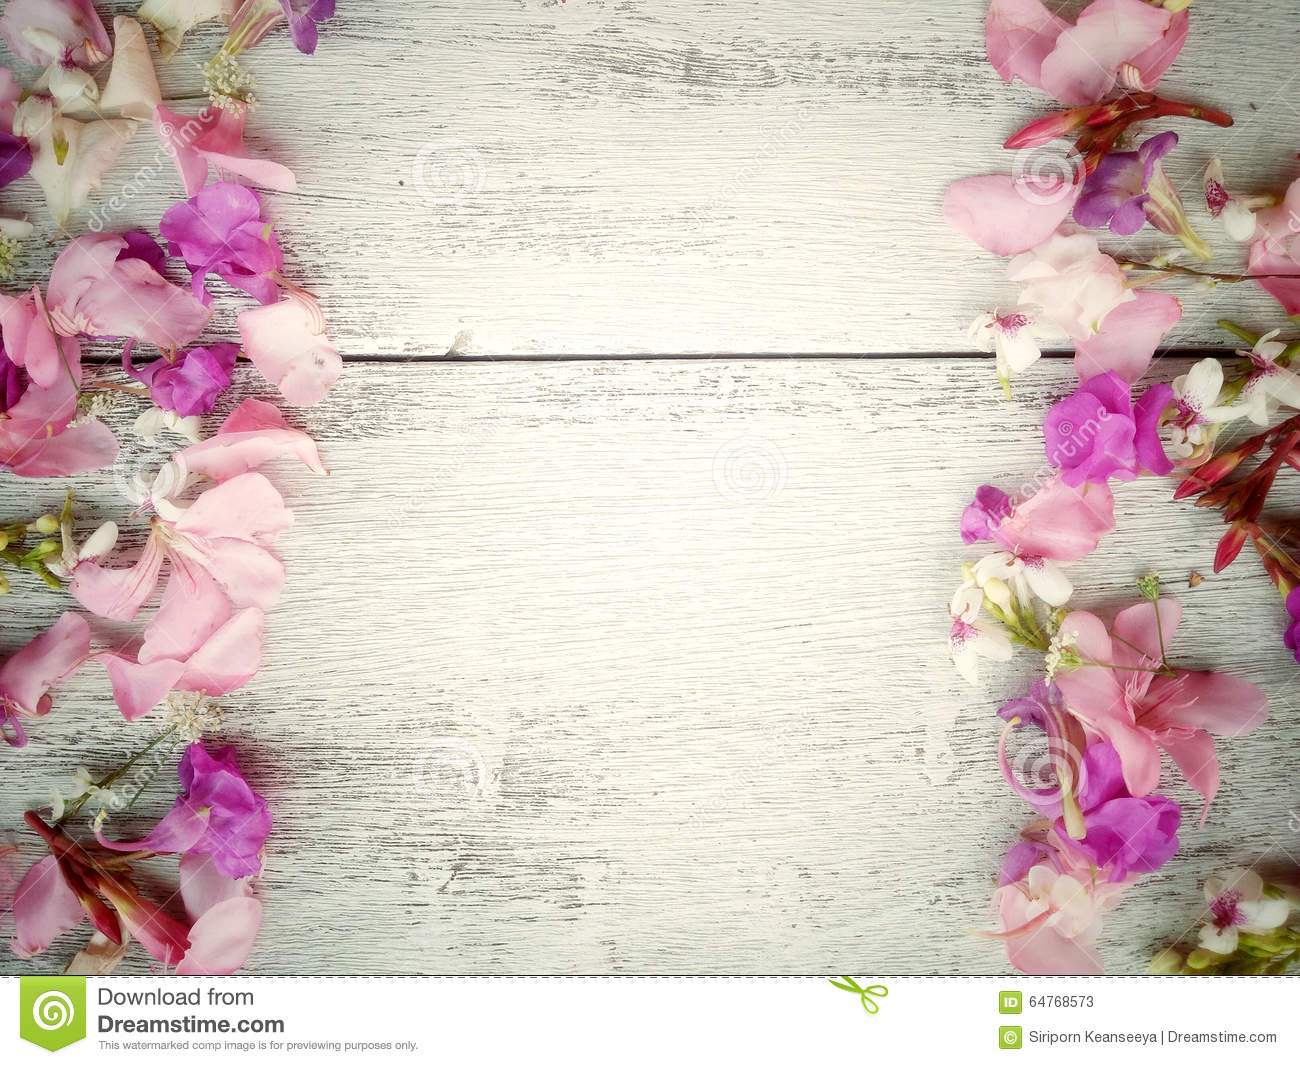 Desktop Wallpaper Floral Border